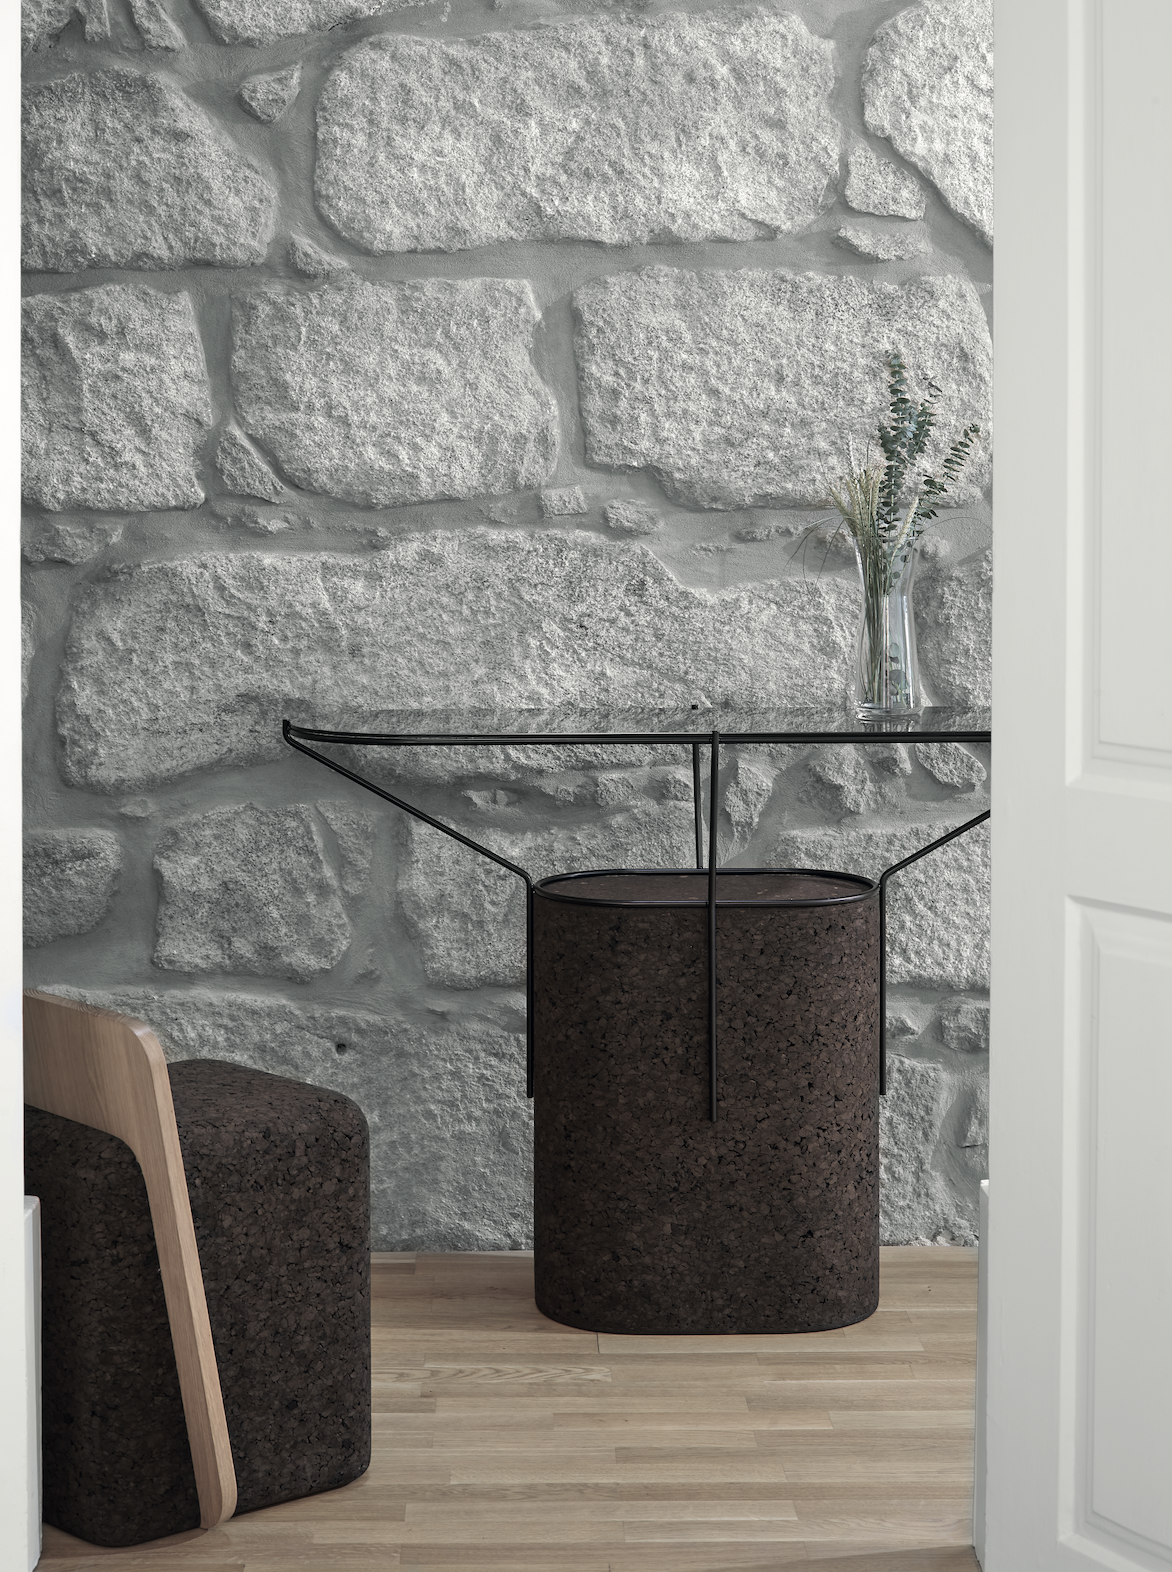 """Cut Side Table - It is only used cork of the branches (falca) for the manufacture of cork granules. These are block clusters in autoclave, being 100% natural process, without use of additives. Technology, developed by Sofalca, consists of injecting water vapour through the pallets that will expand and agglutinate with the resins of the cork itself. This """"cooking"""" gives also dark colour to the agglomerated cork, like chocolate. In the production of steam I used biomass, obtained on milling and cleaning the falca, what makes it truly ecological production and without waste, 95% energy self-sufficient. As a super-material, cork offers so many advantages, because in addition to its excellent thermic, acoustic insulation and anti vibration characteristic, it is also a CO2 sink playing a key-role in the environment.   Matter of Stuff"""